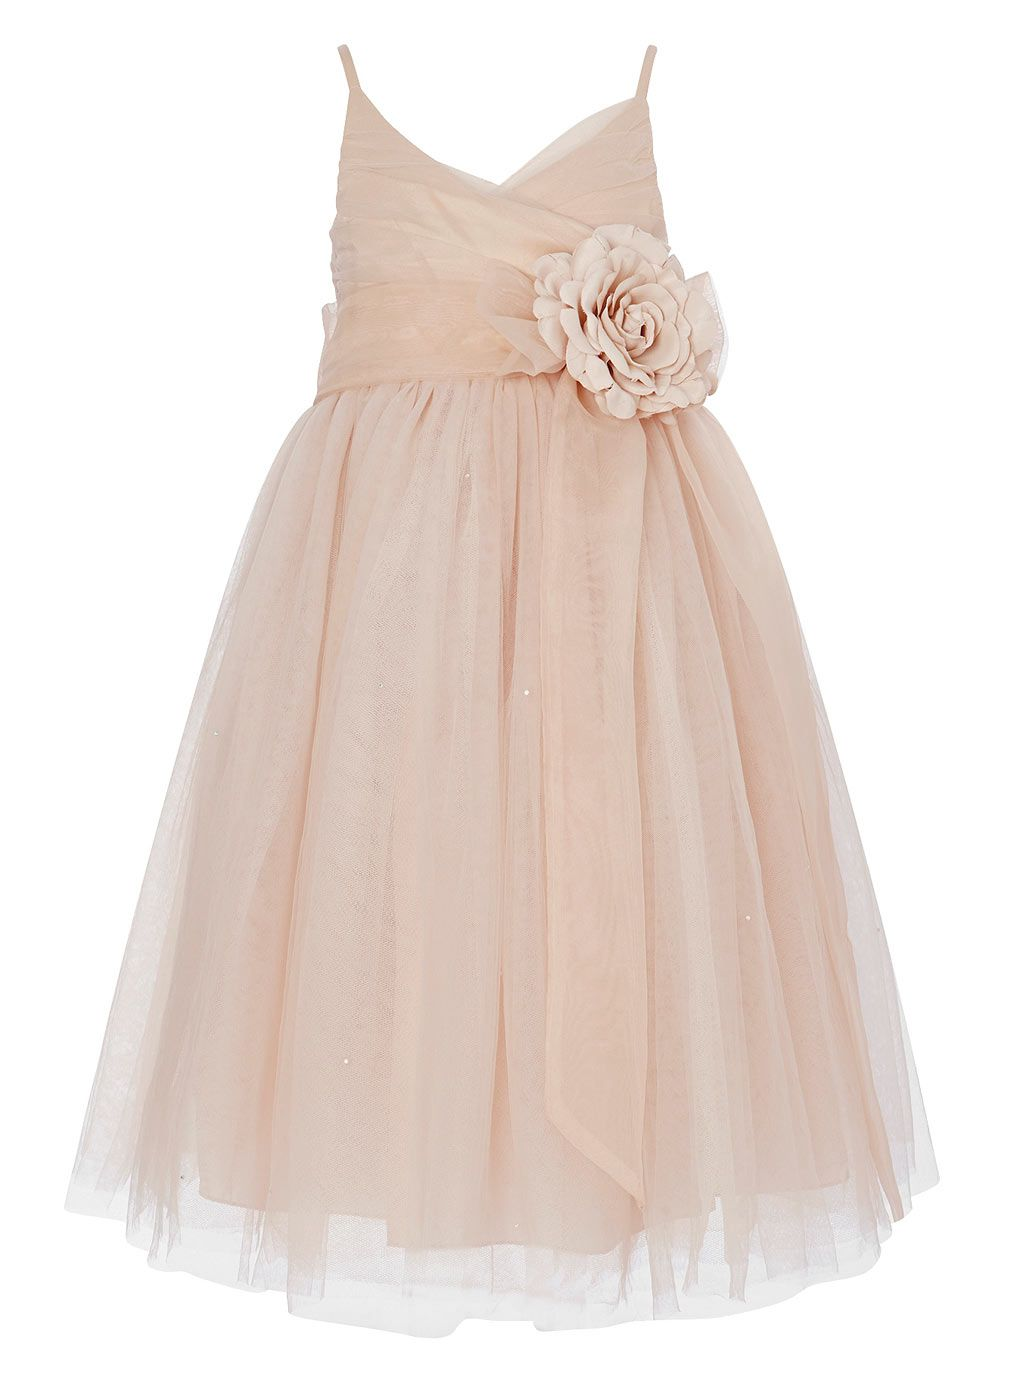 Tulle layered pearl pink double straps ankle length flower girl tulle layered pearl pink double straps ankle length flower girl dress ombrellifo Gallery